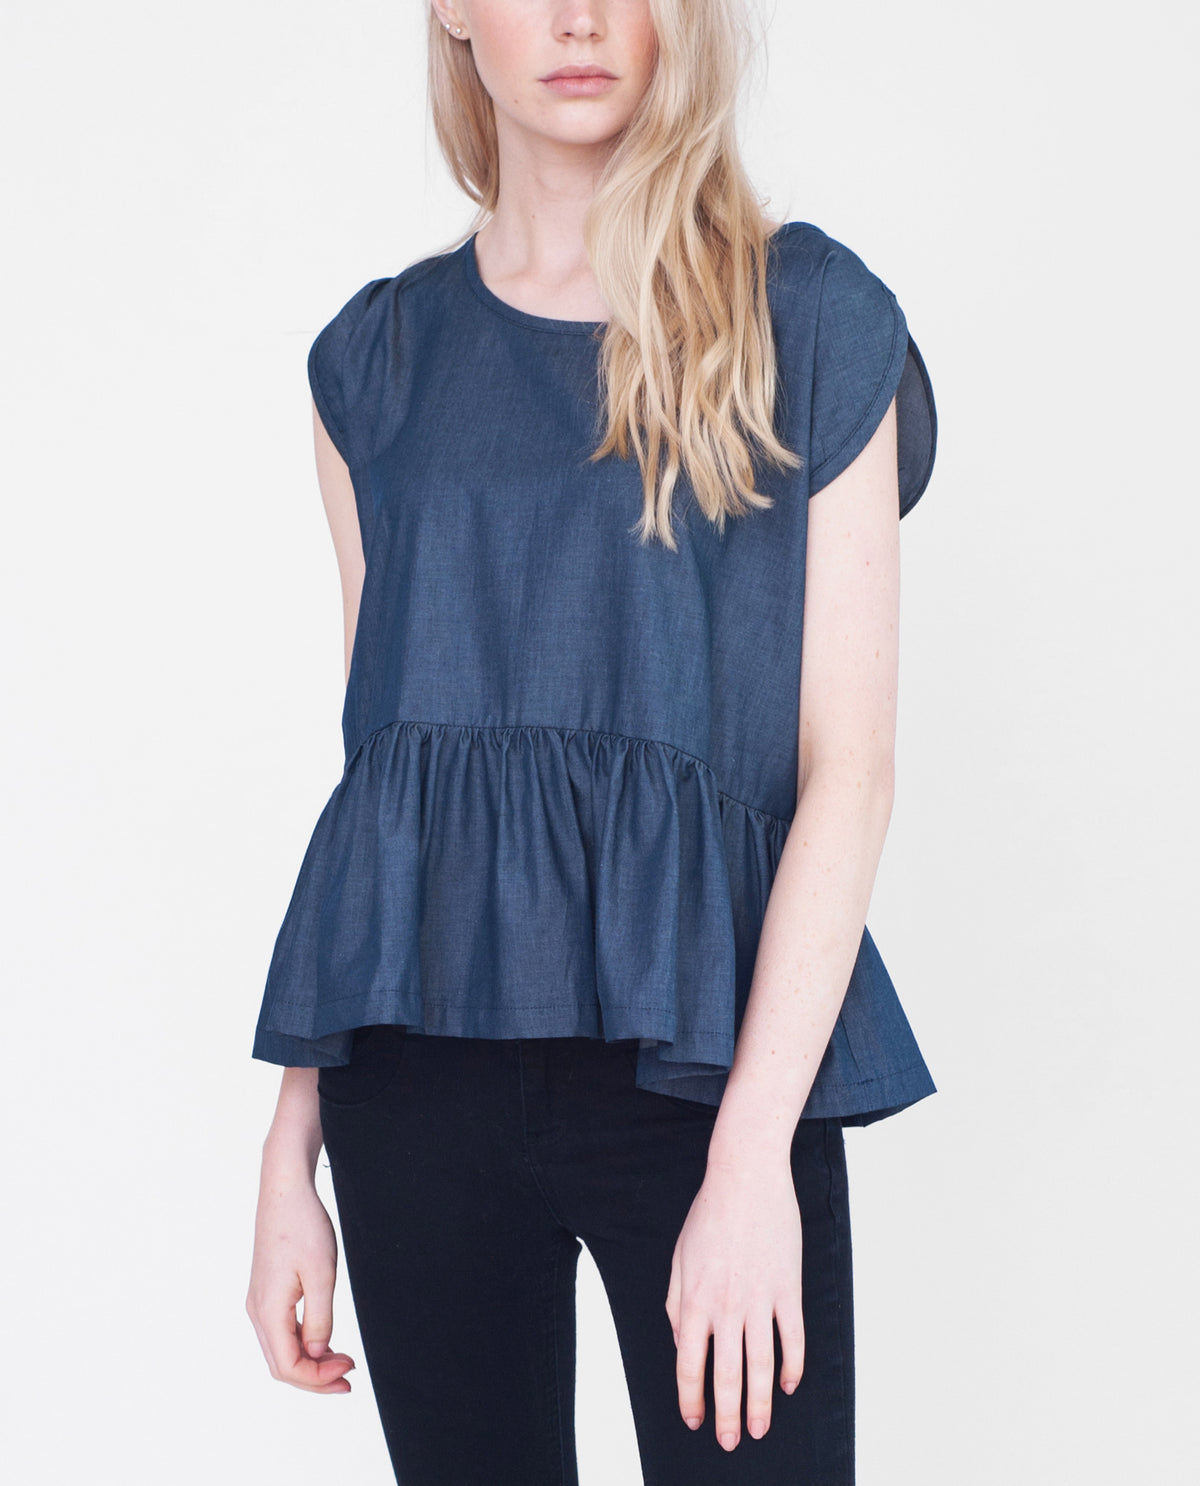 BELLE Cotton Denim Top